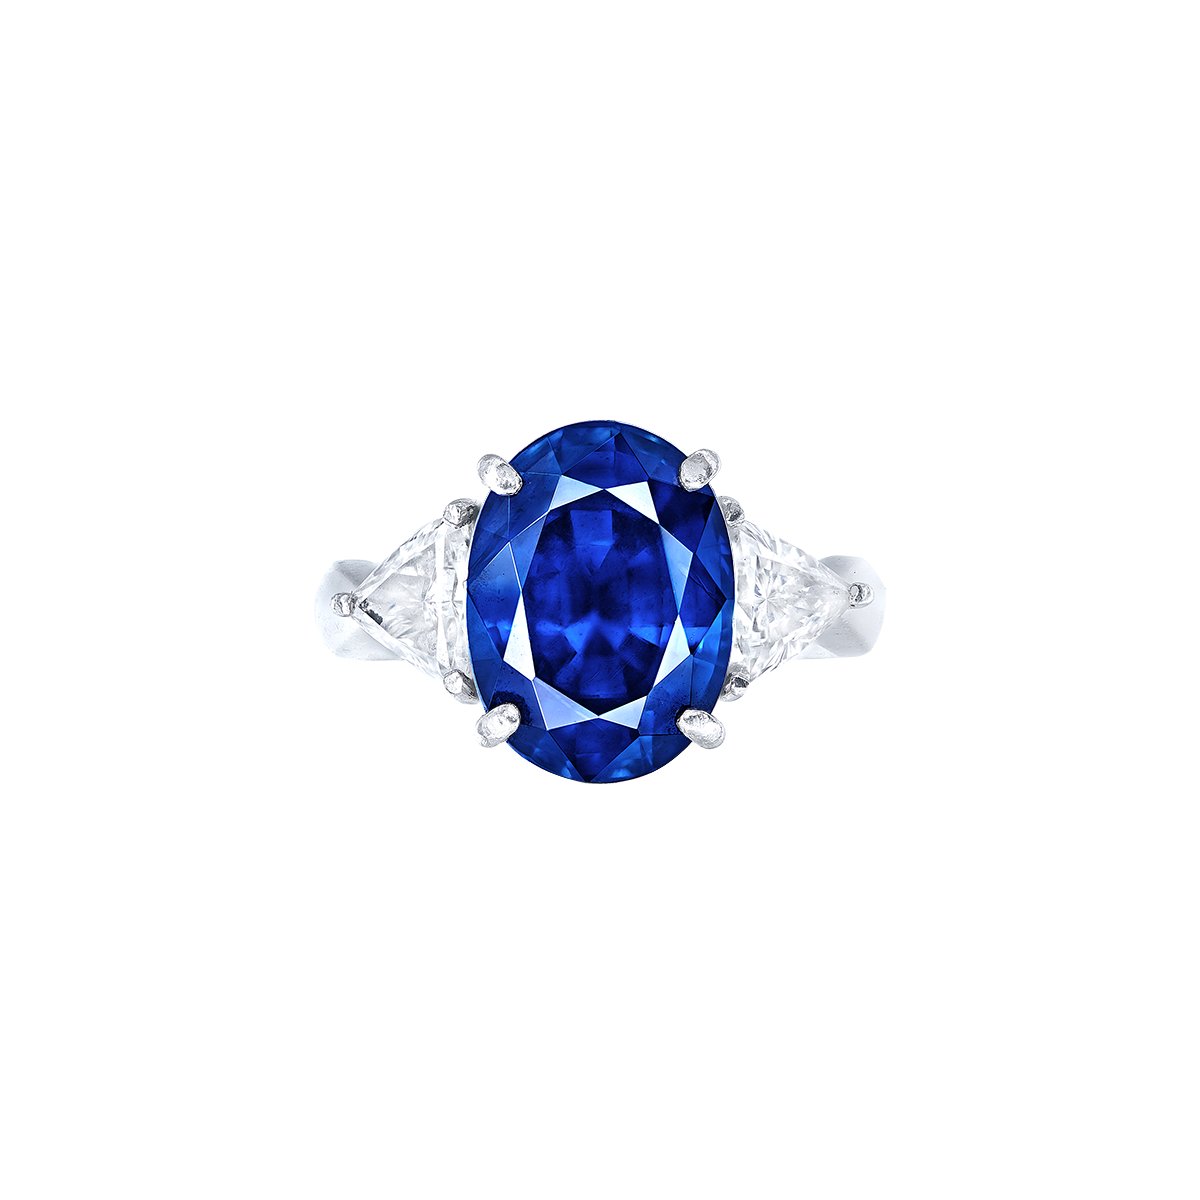 7.67 克拉 天然藍寶石鑽戒